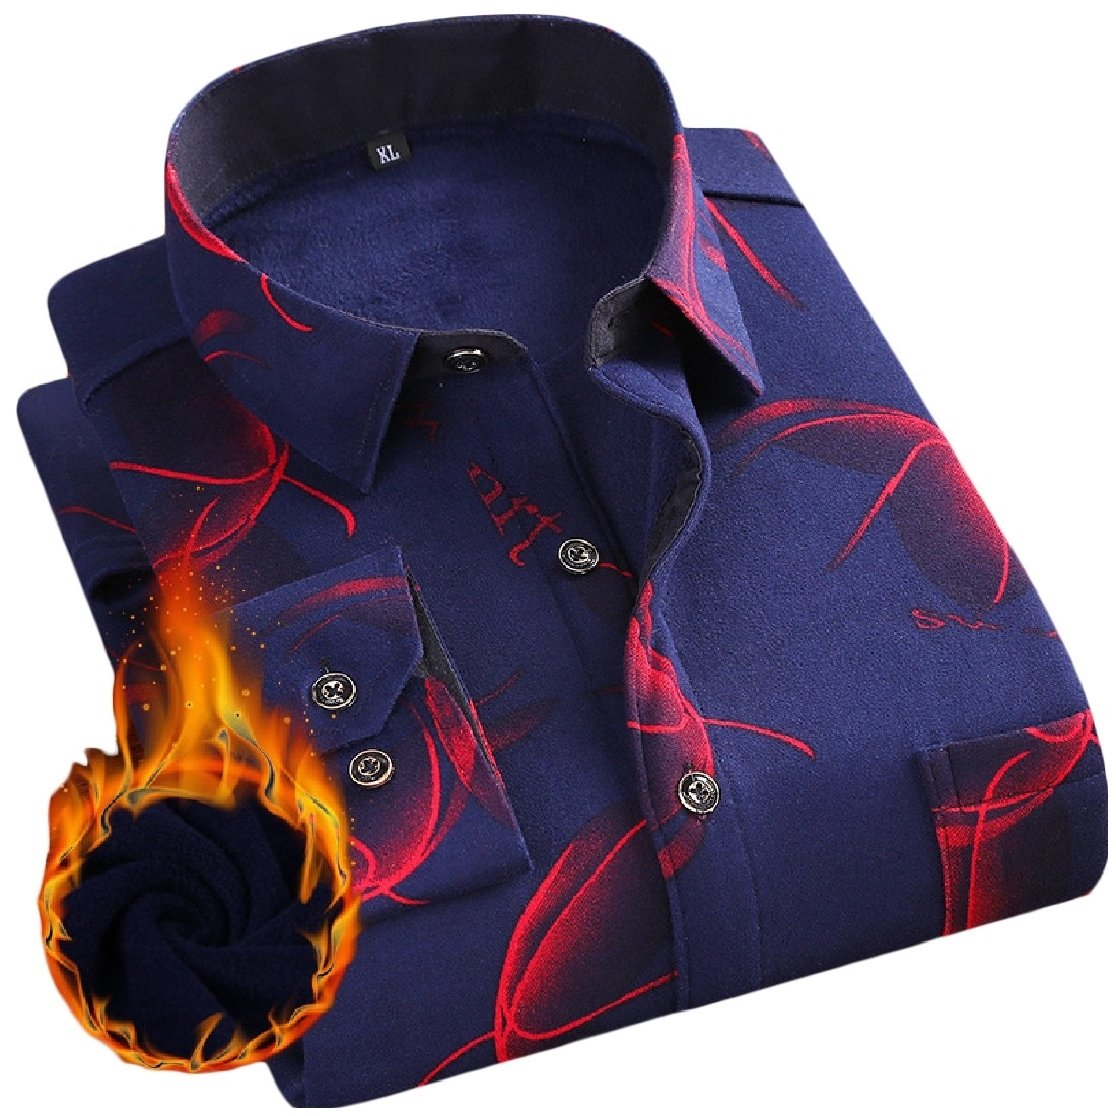 YUNY Mens Lapel Warm Long Sleeve Buttons Flannel Printing Thicken Dress Shirt AS12 XL